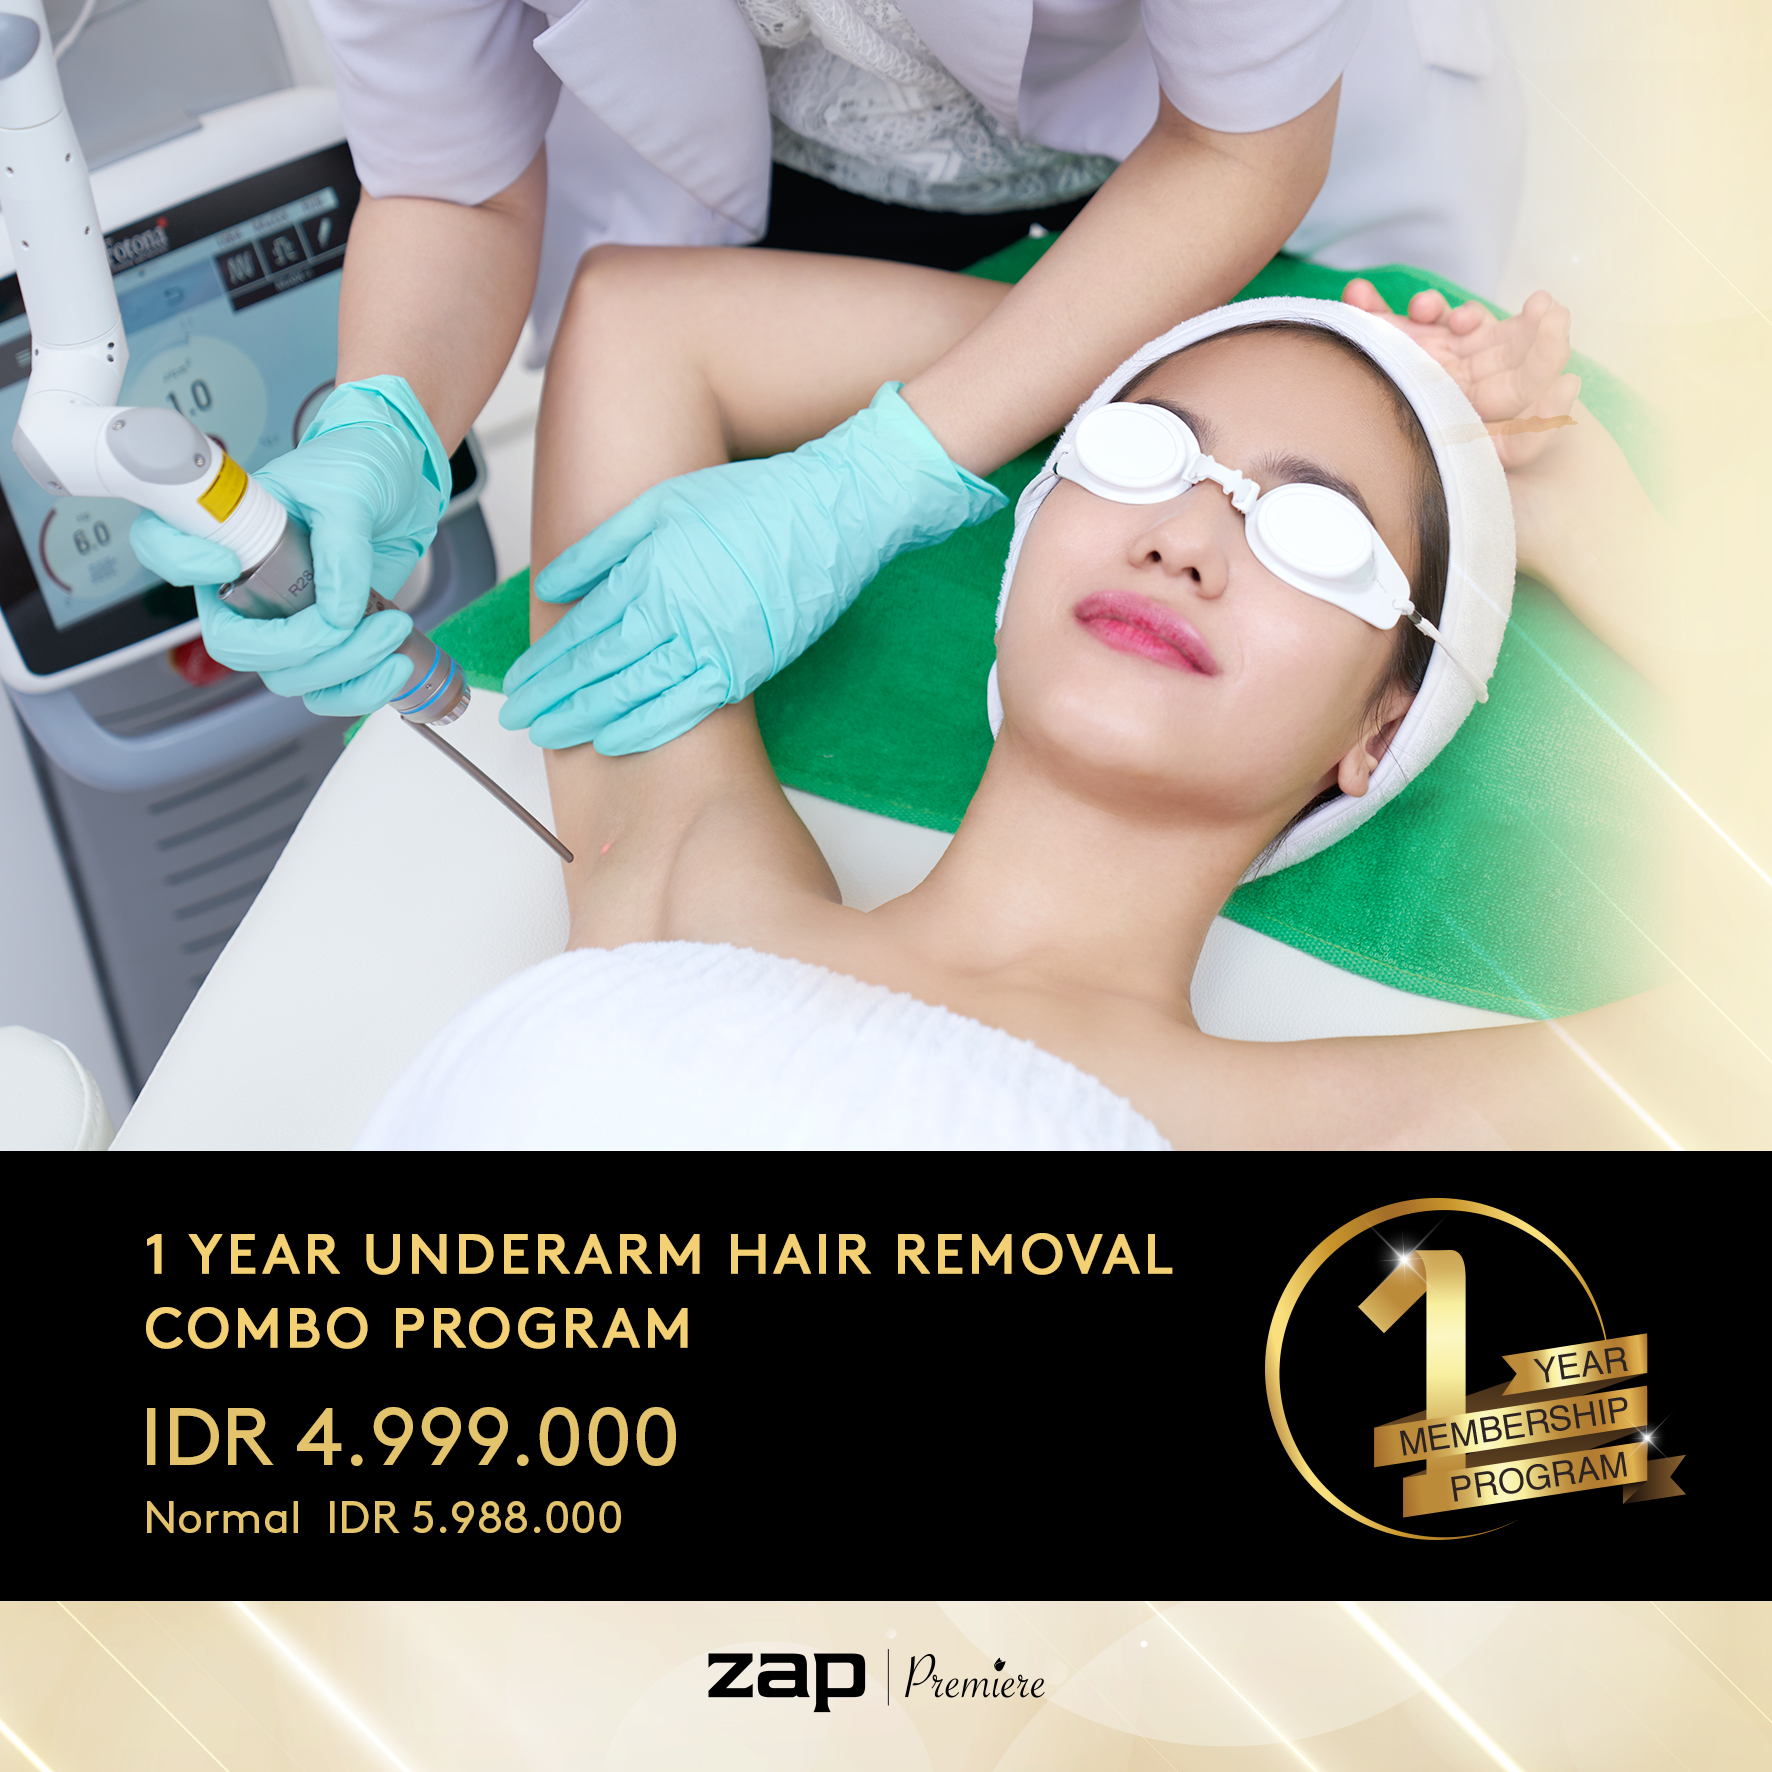 1 Year Underarm Hair Removal Combo Program